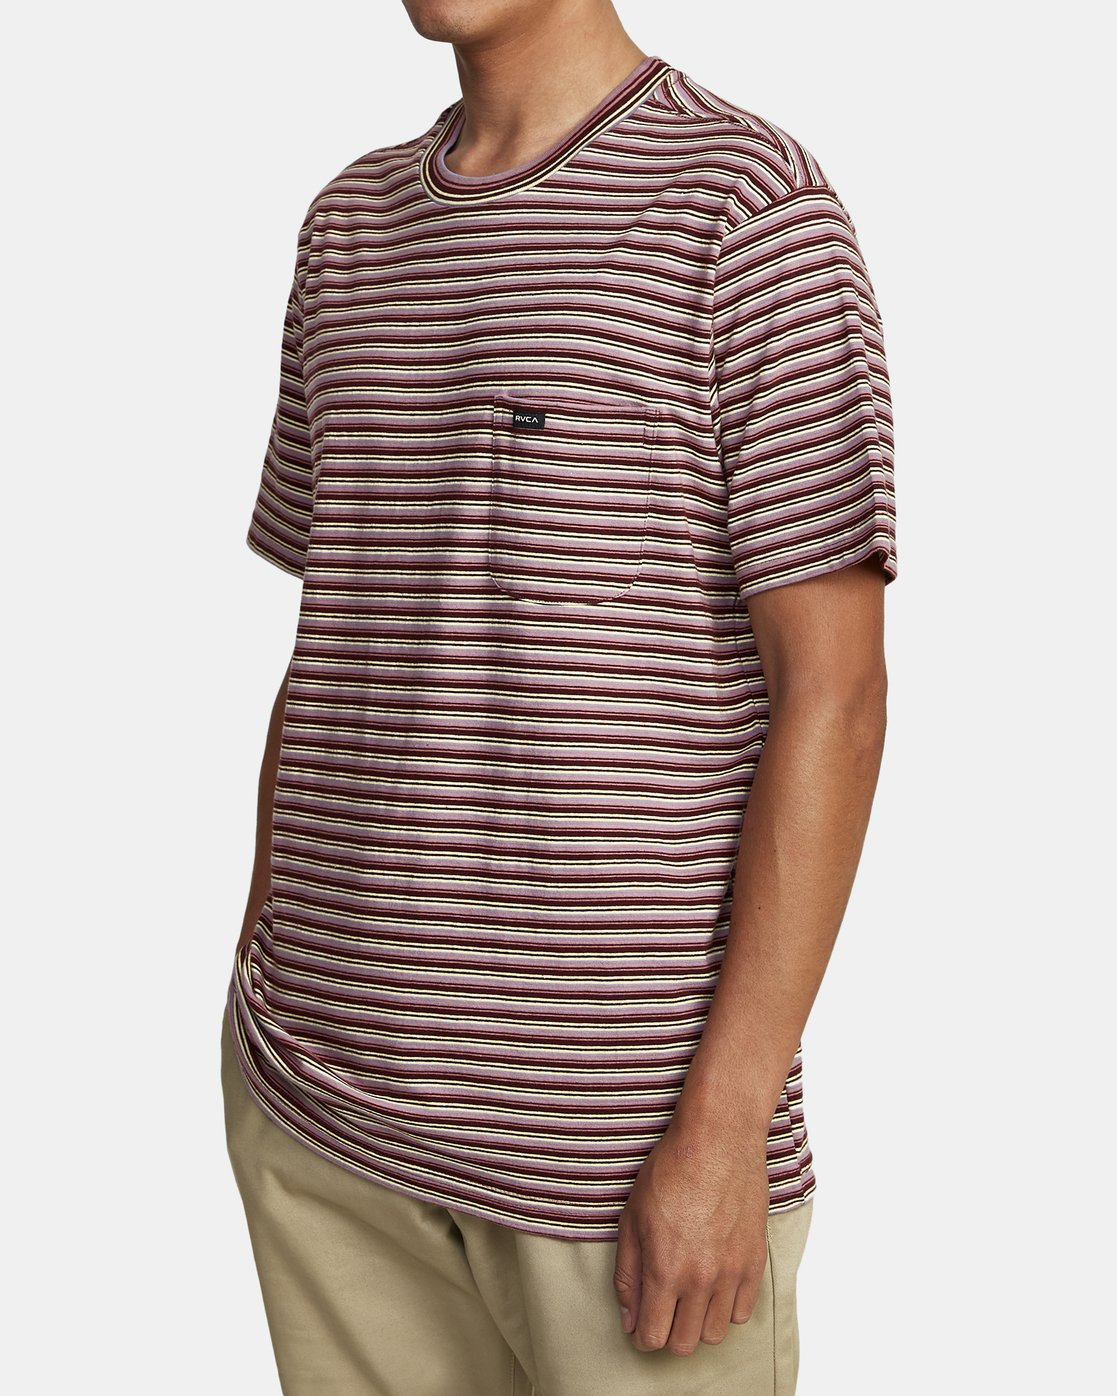 7 DOWNLINE STRIPE SHORT SLEEVE T-SHIRT Red M9042RDL RVCA